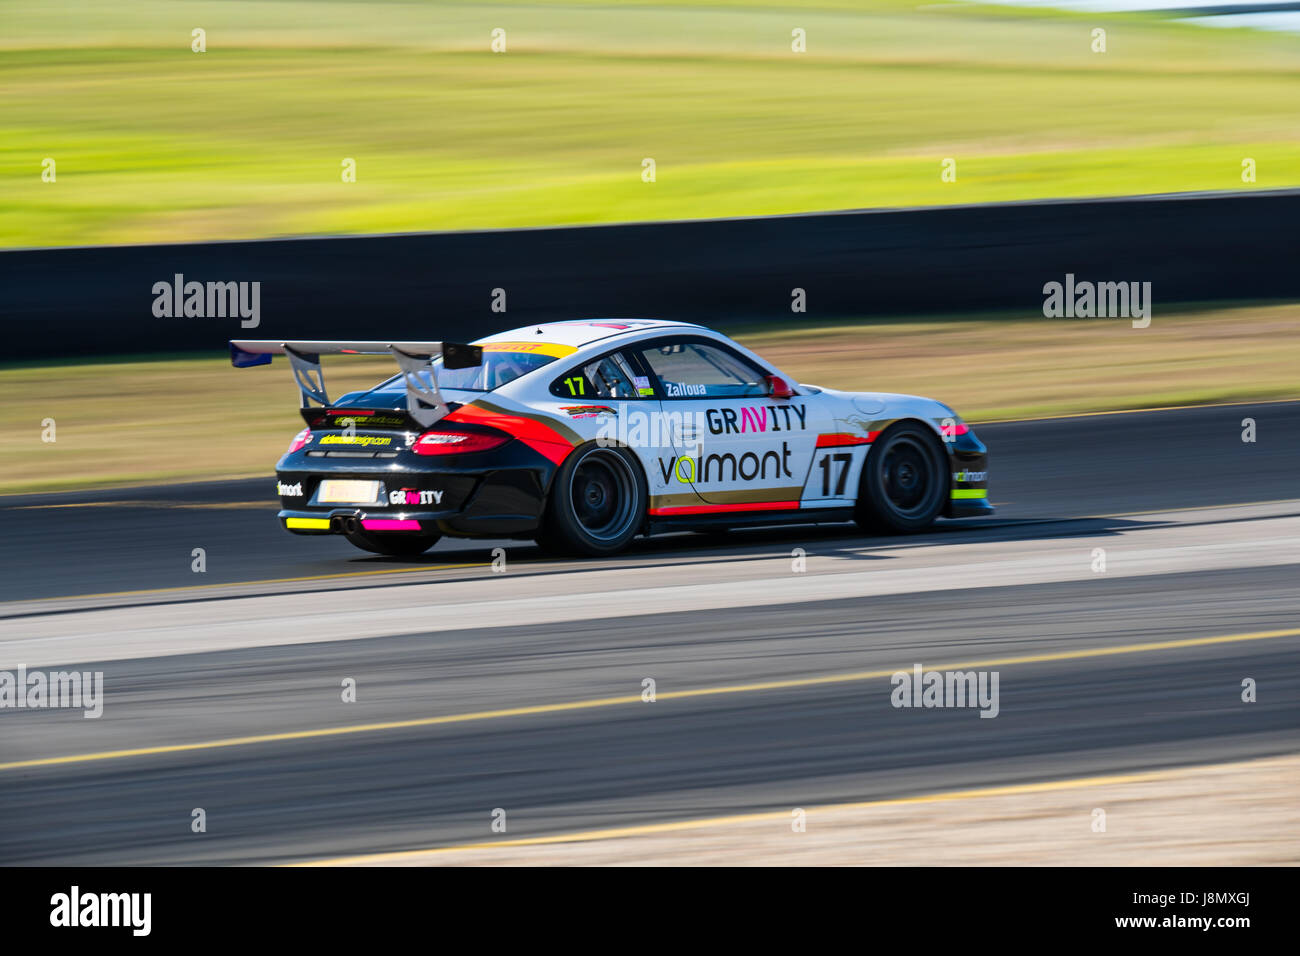 Sydney Motorsport Park, Australia. 28th May 2017.  360 Motorsport. Anthony Bolack/Alamy Live News - Stock Image